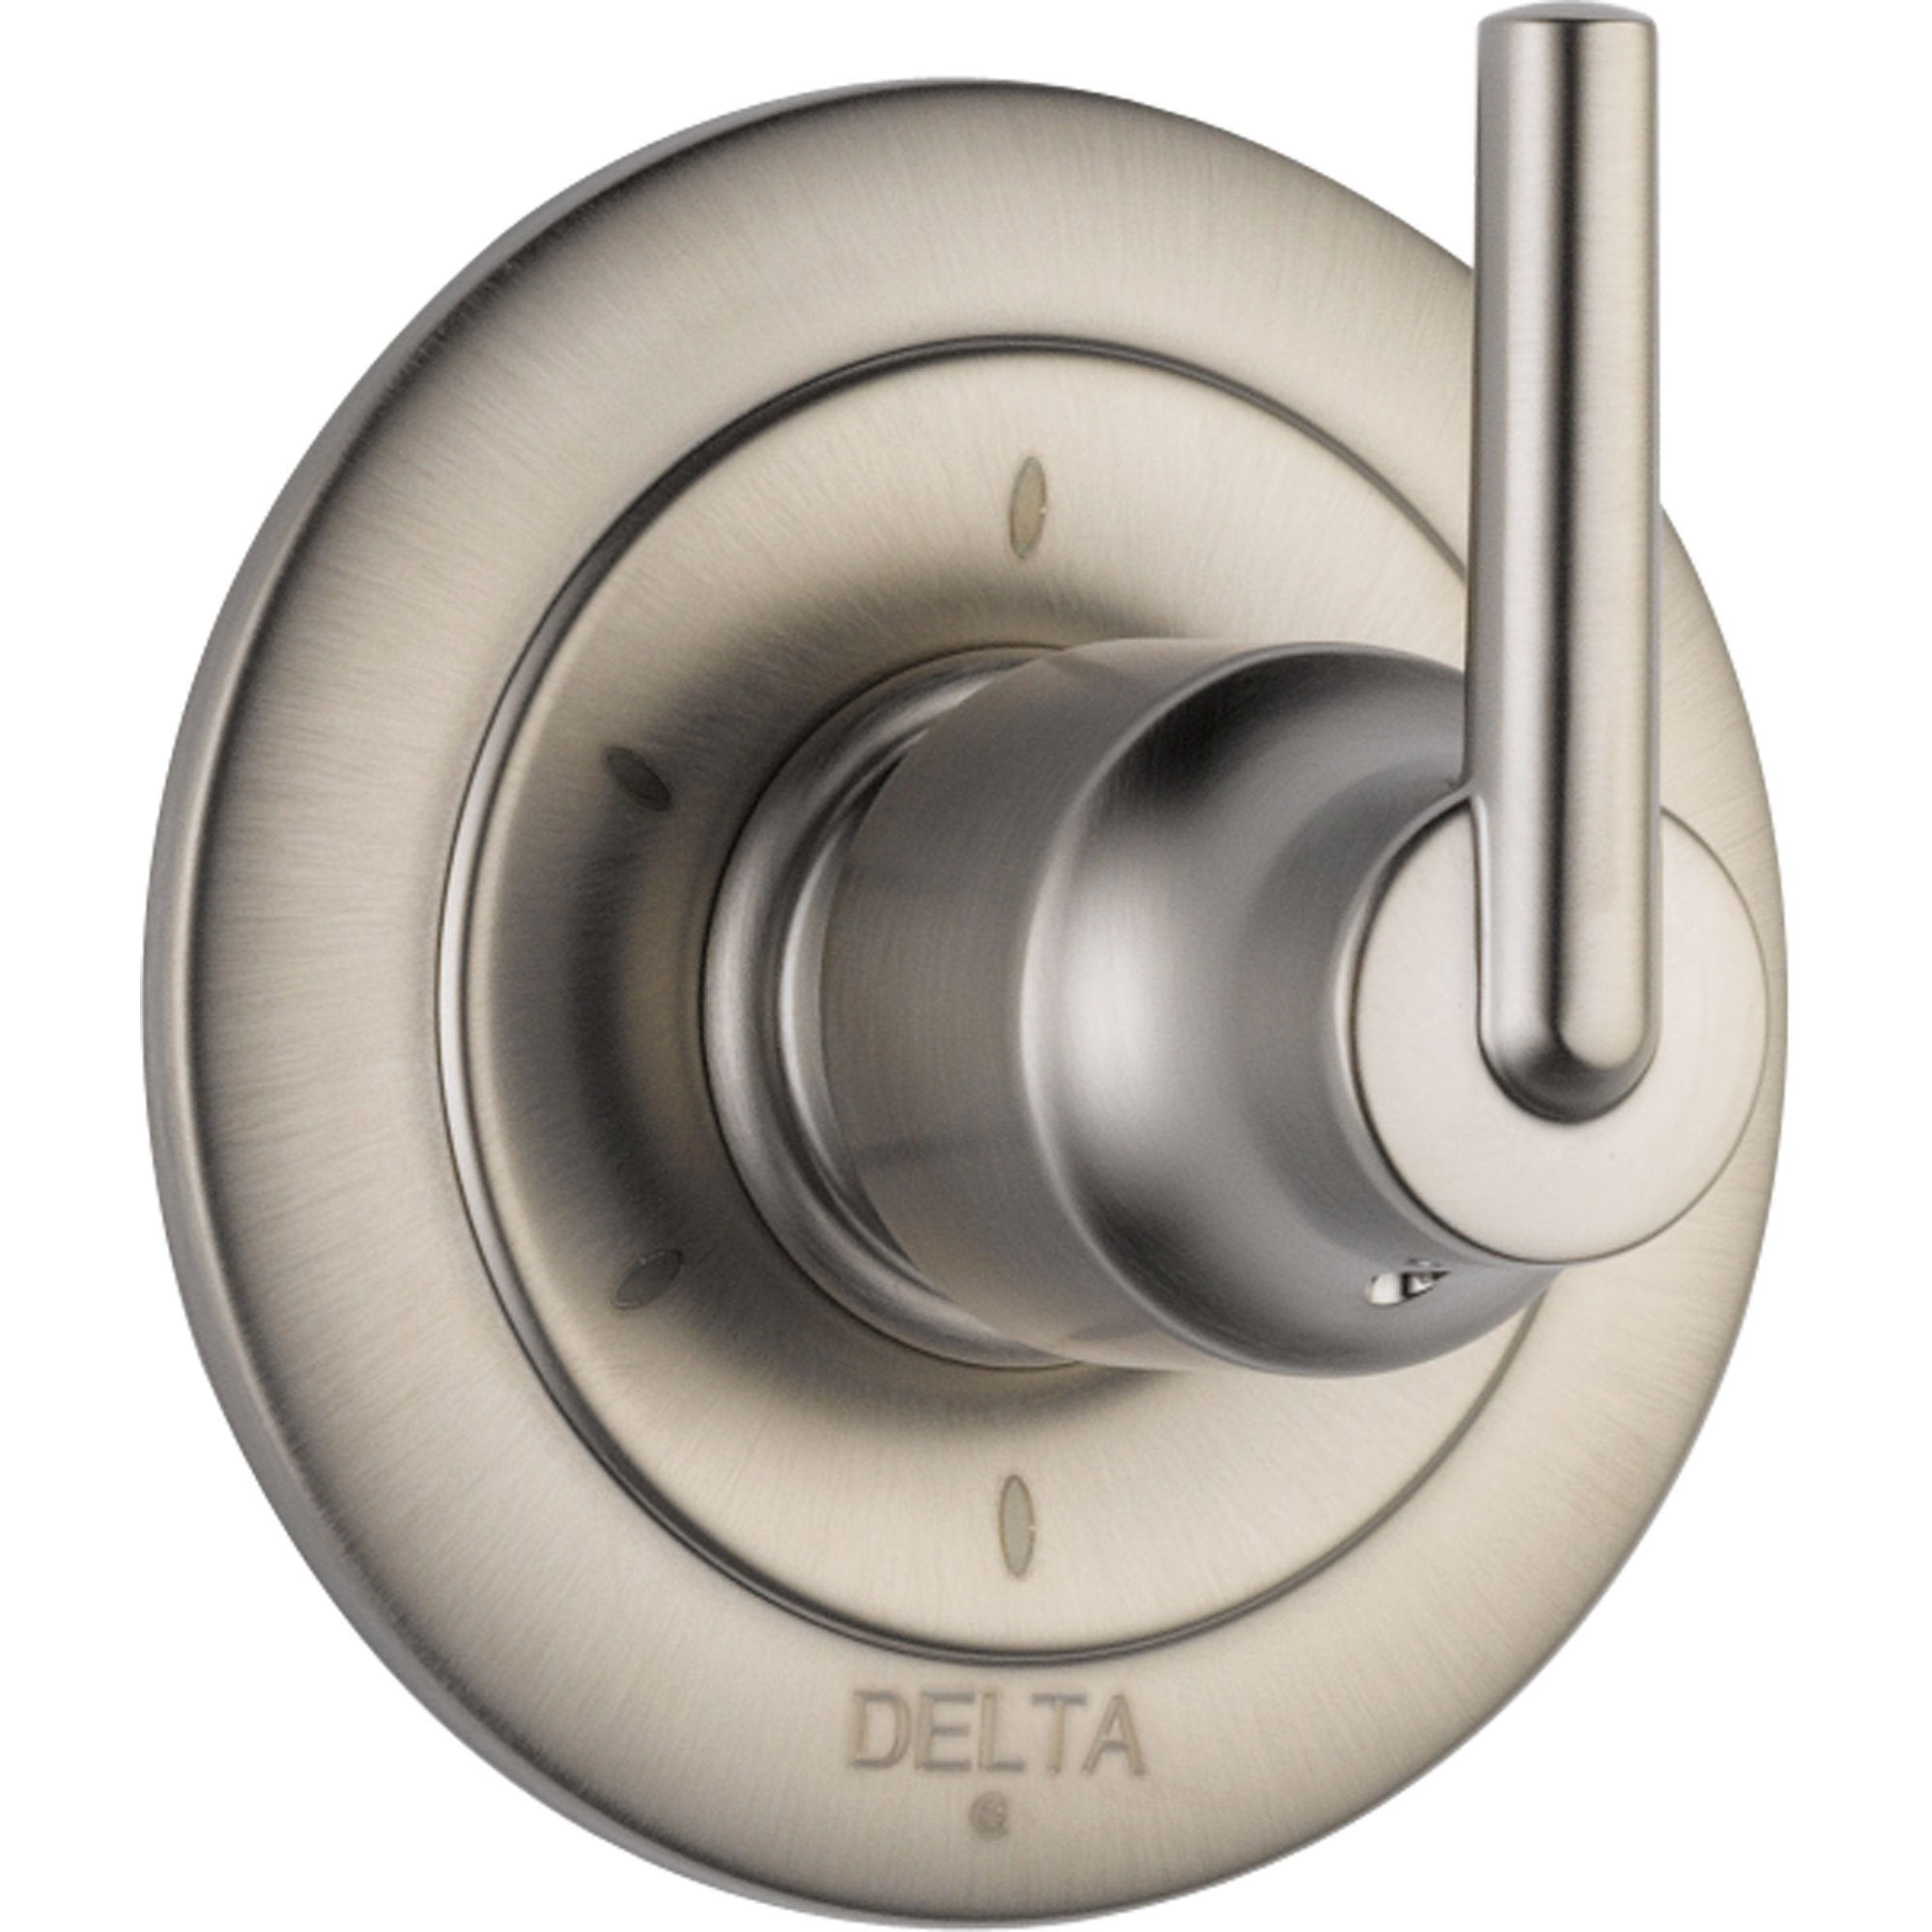 Delta Trinsic 6-Setting Stainless Steel Finish Shower Diverter Trim Kit 590195